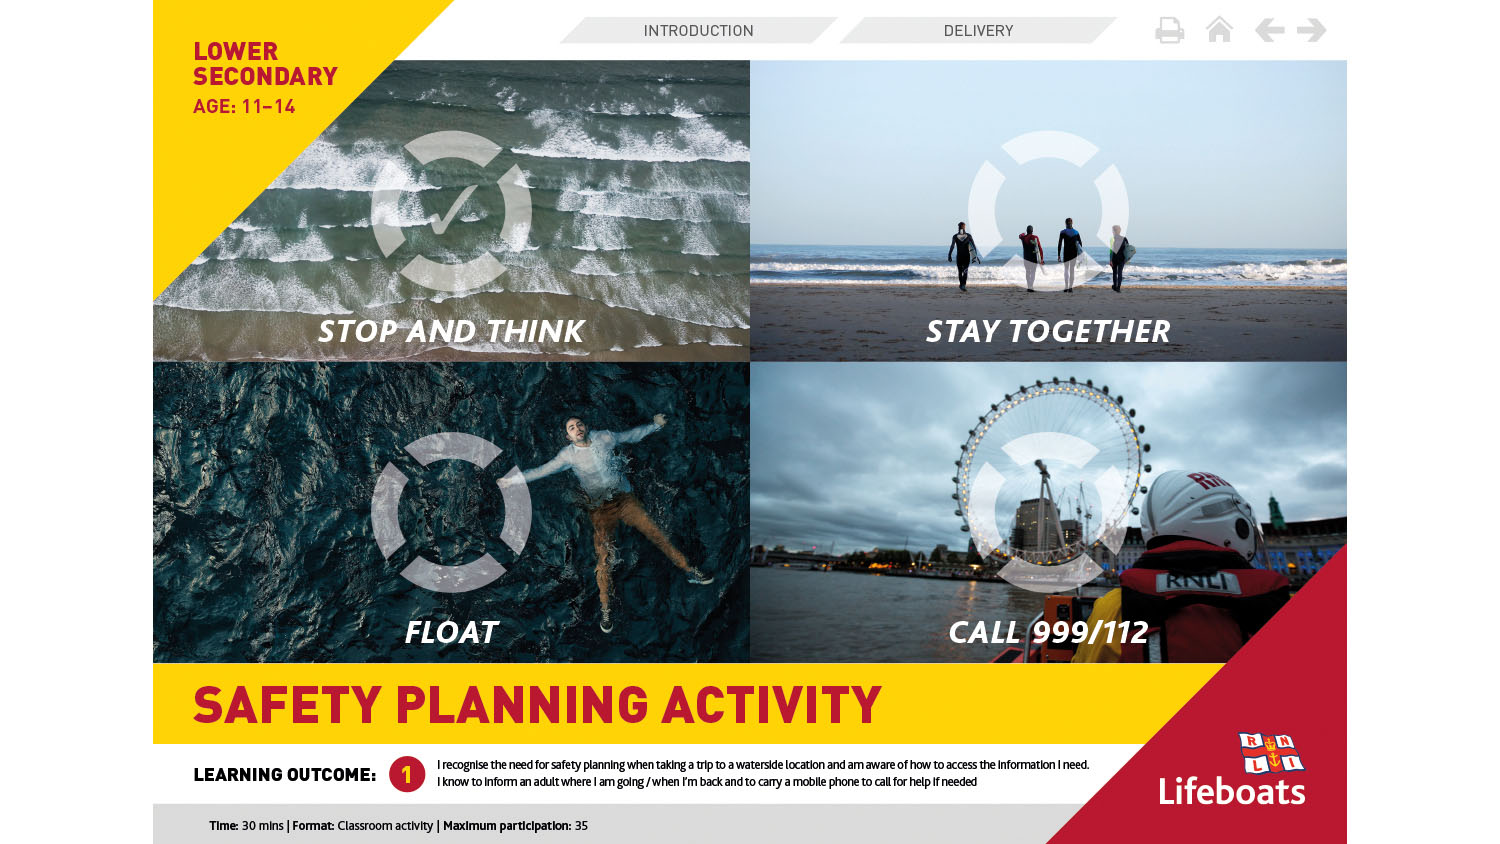 RNLI Safety Planning activity slides